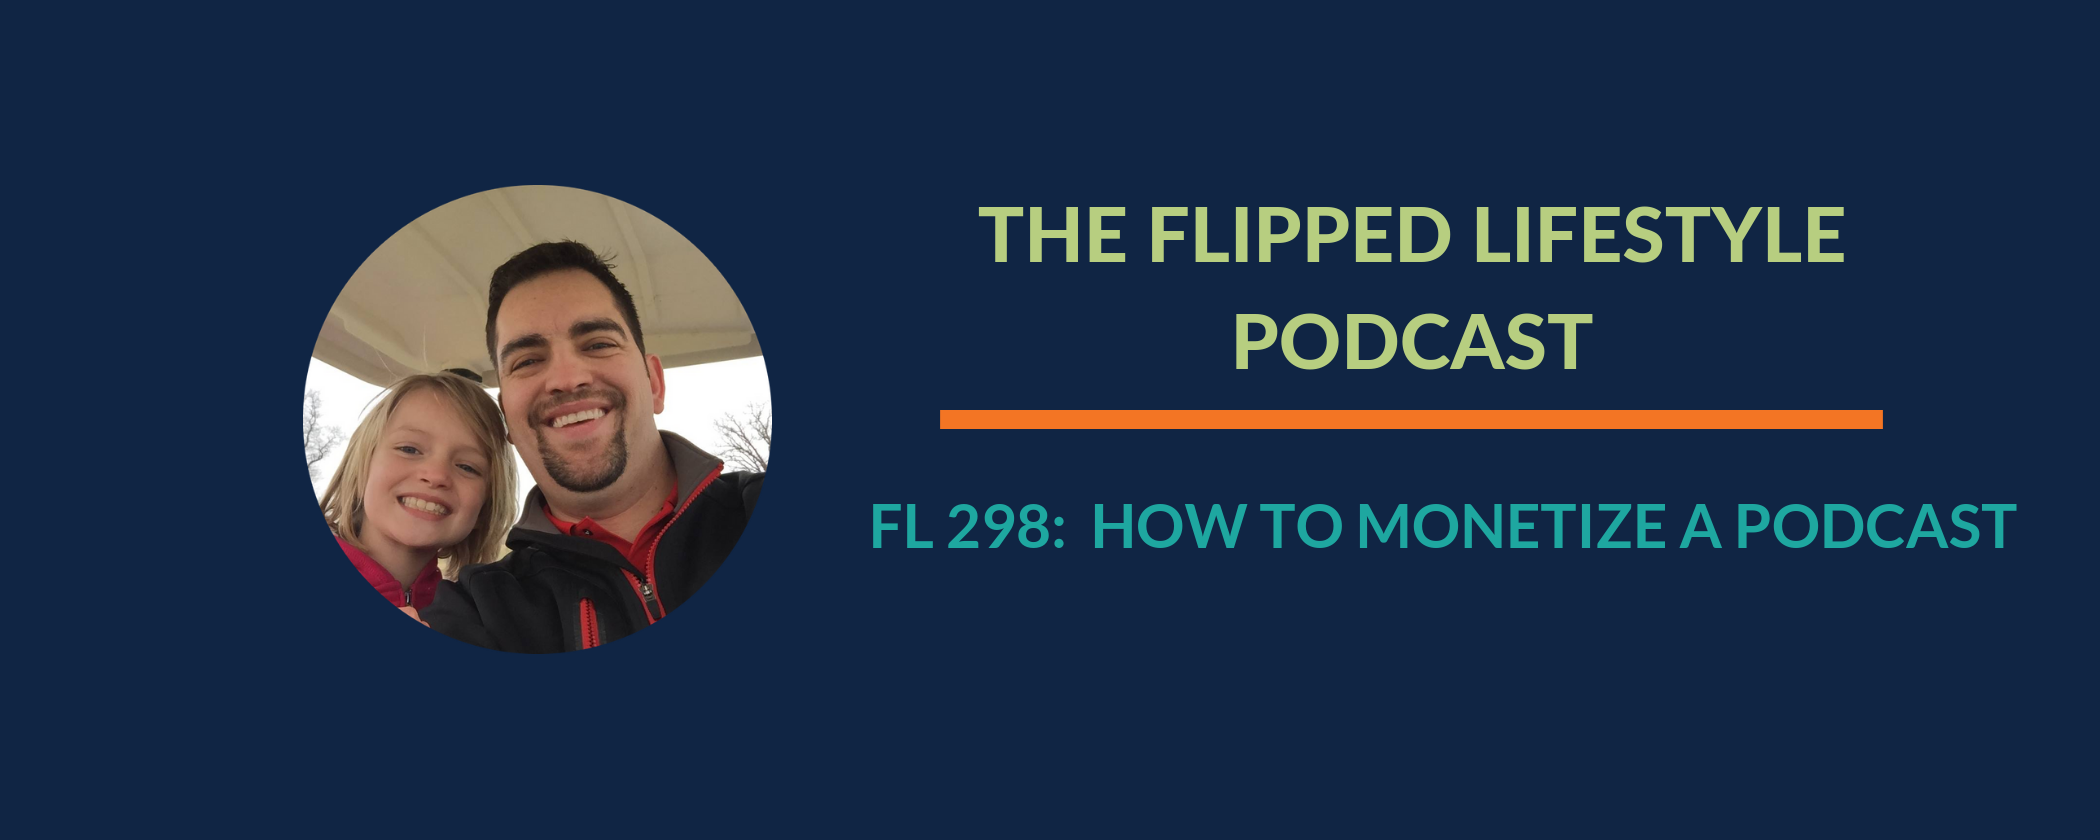 EARLY PODCAST: FL 298 - How to Monetize a Podcast